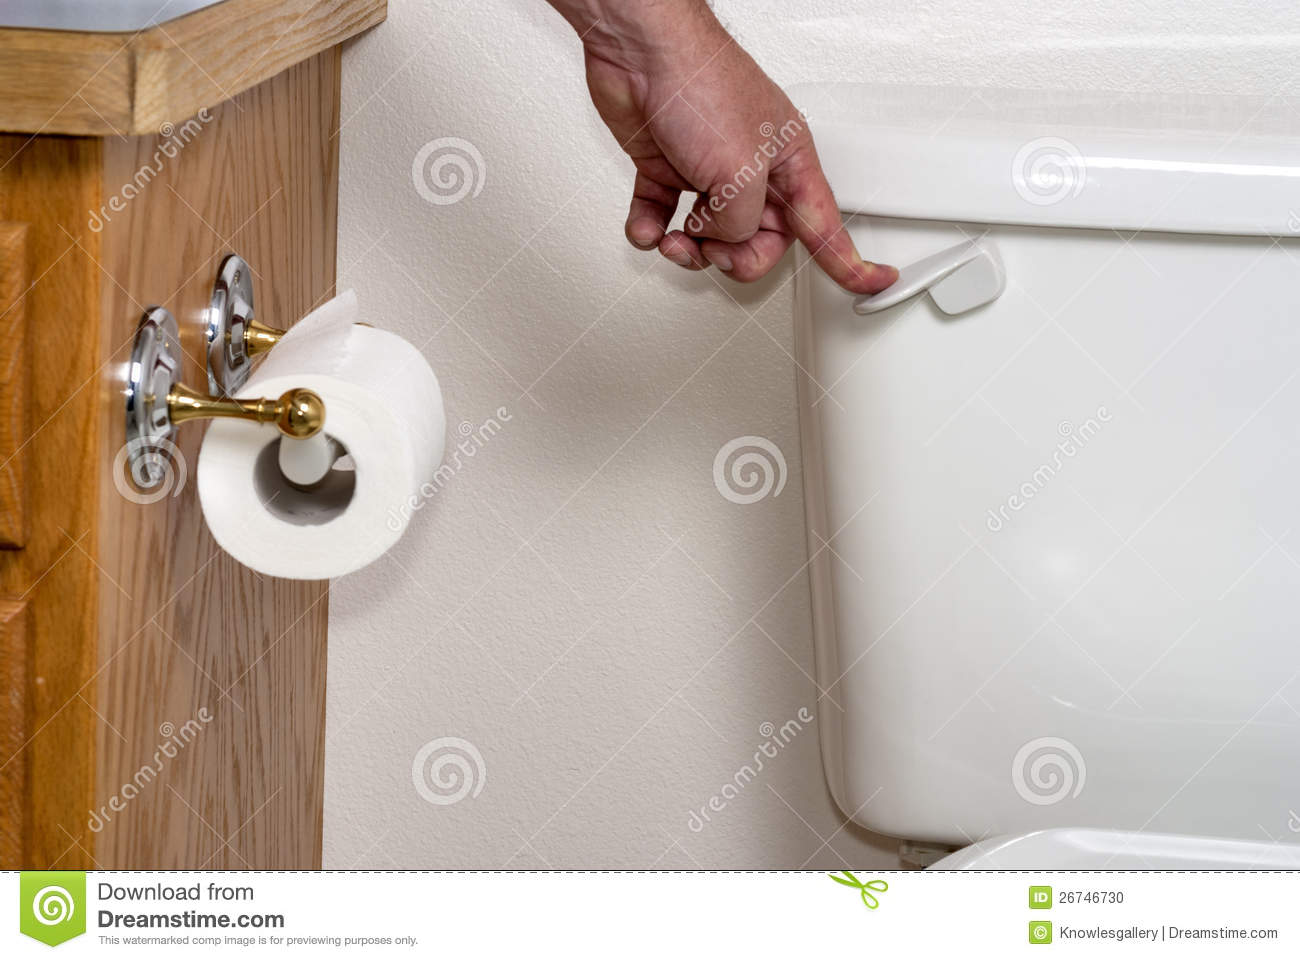 Human Hand Flushing A Toilet Stock Photo - Image of bath, hygiene ...